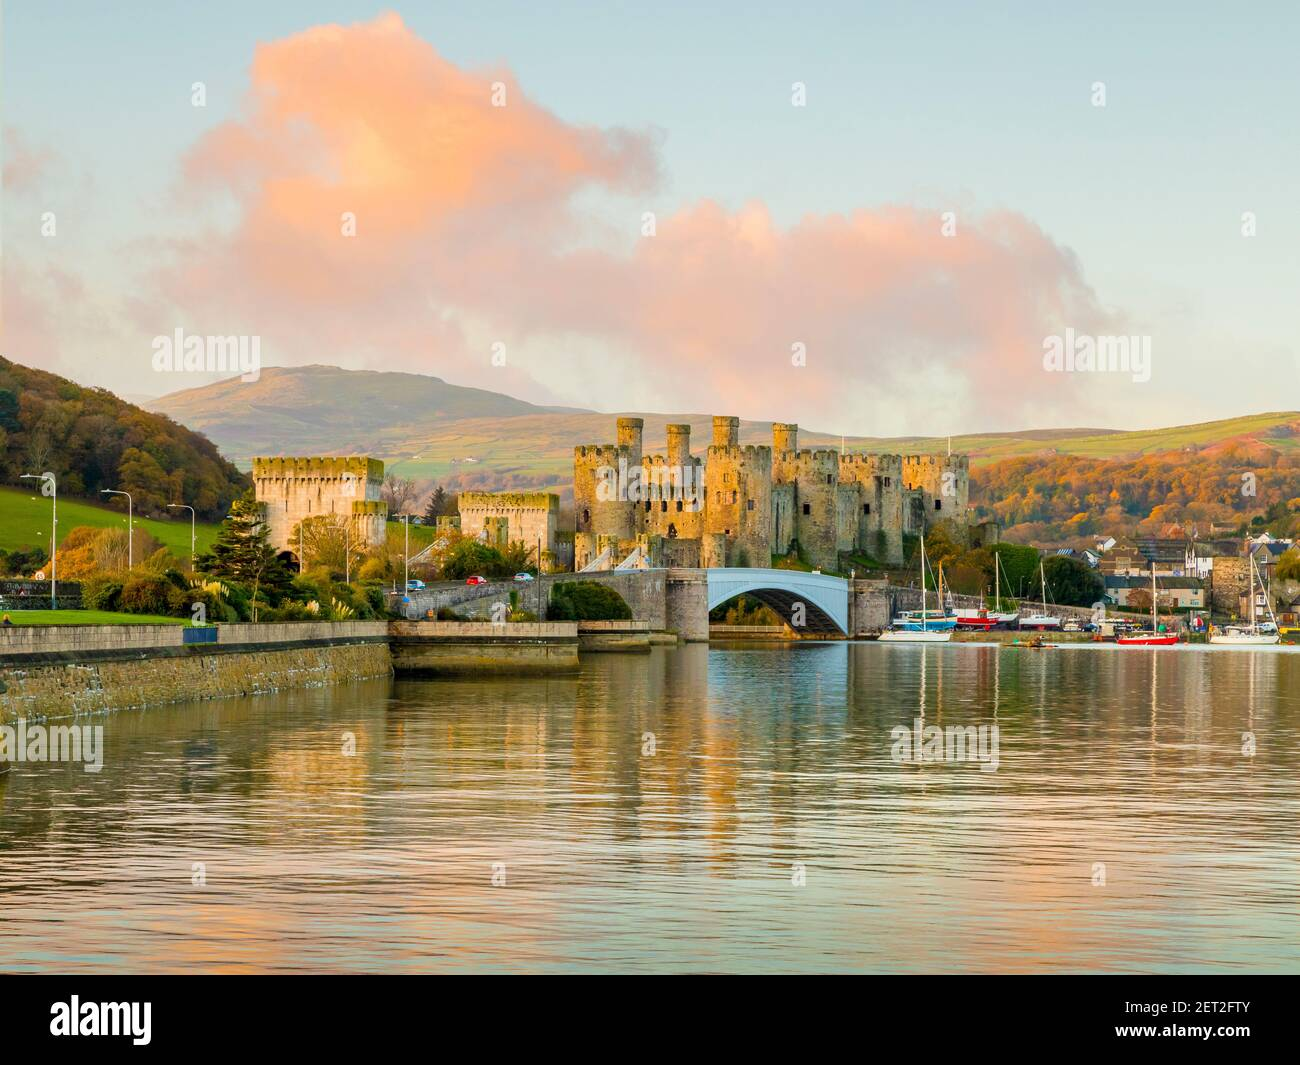 Conwy Castle, seen across the Conwy Estuary in North Wales. soon after sunrise. Stock Photo